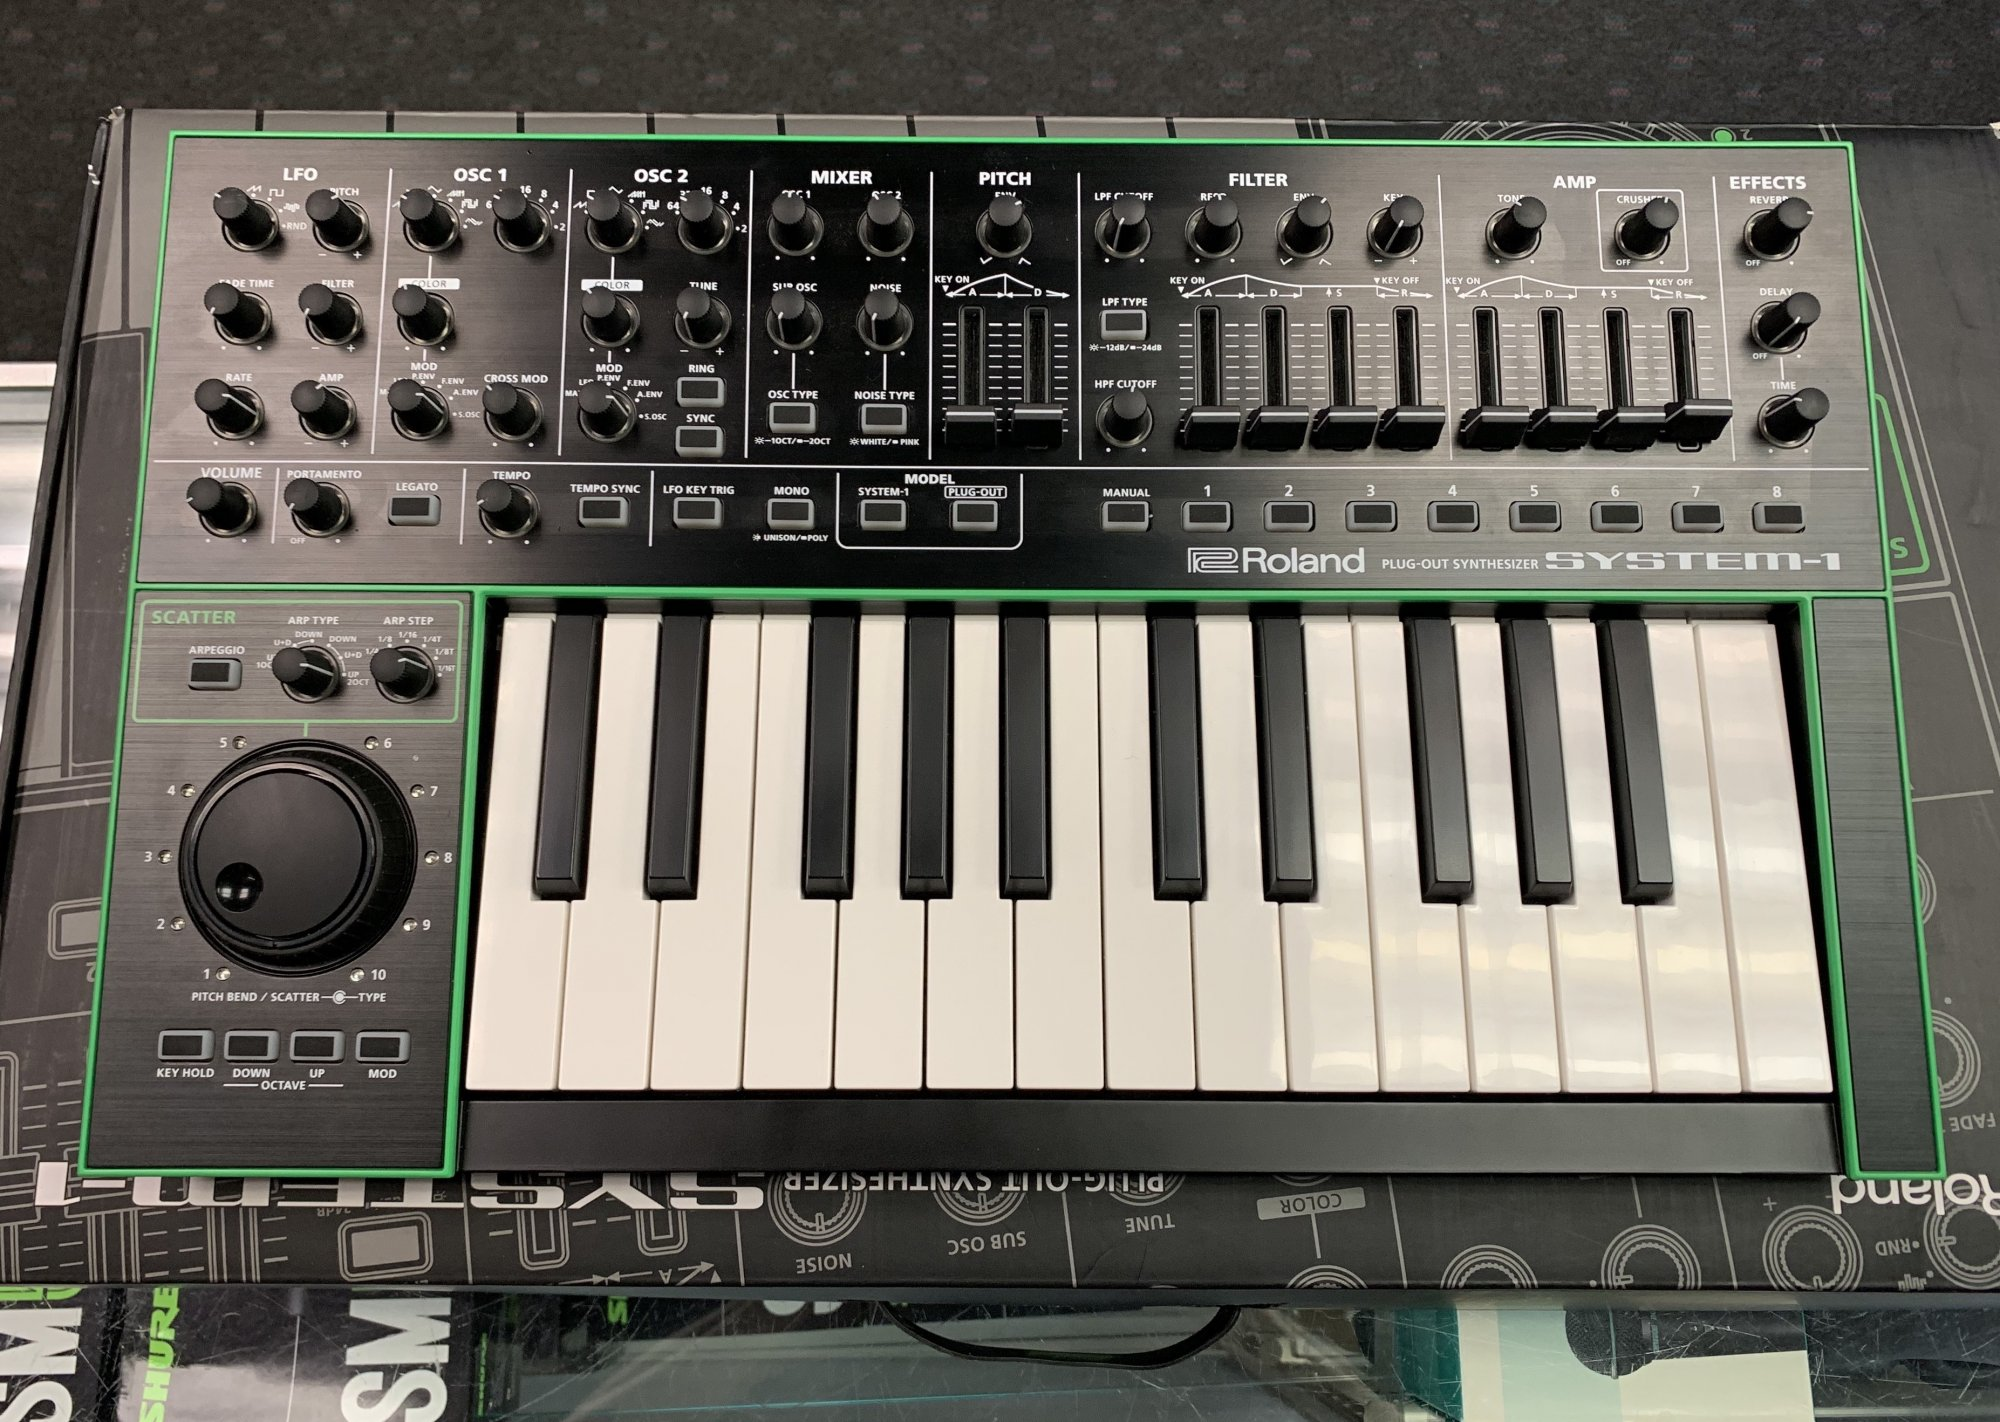 Used Roland Plug-Out Synthesizer System-1